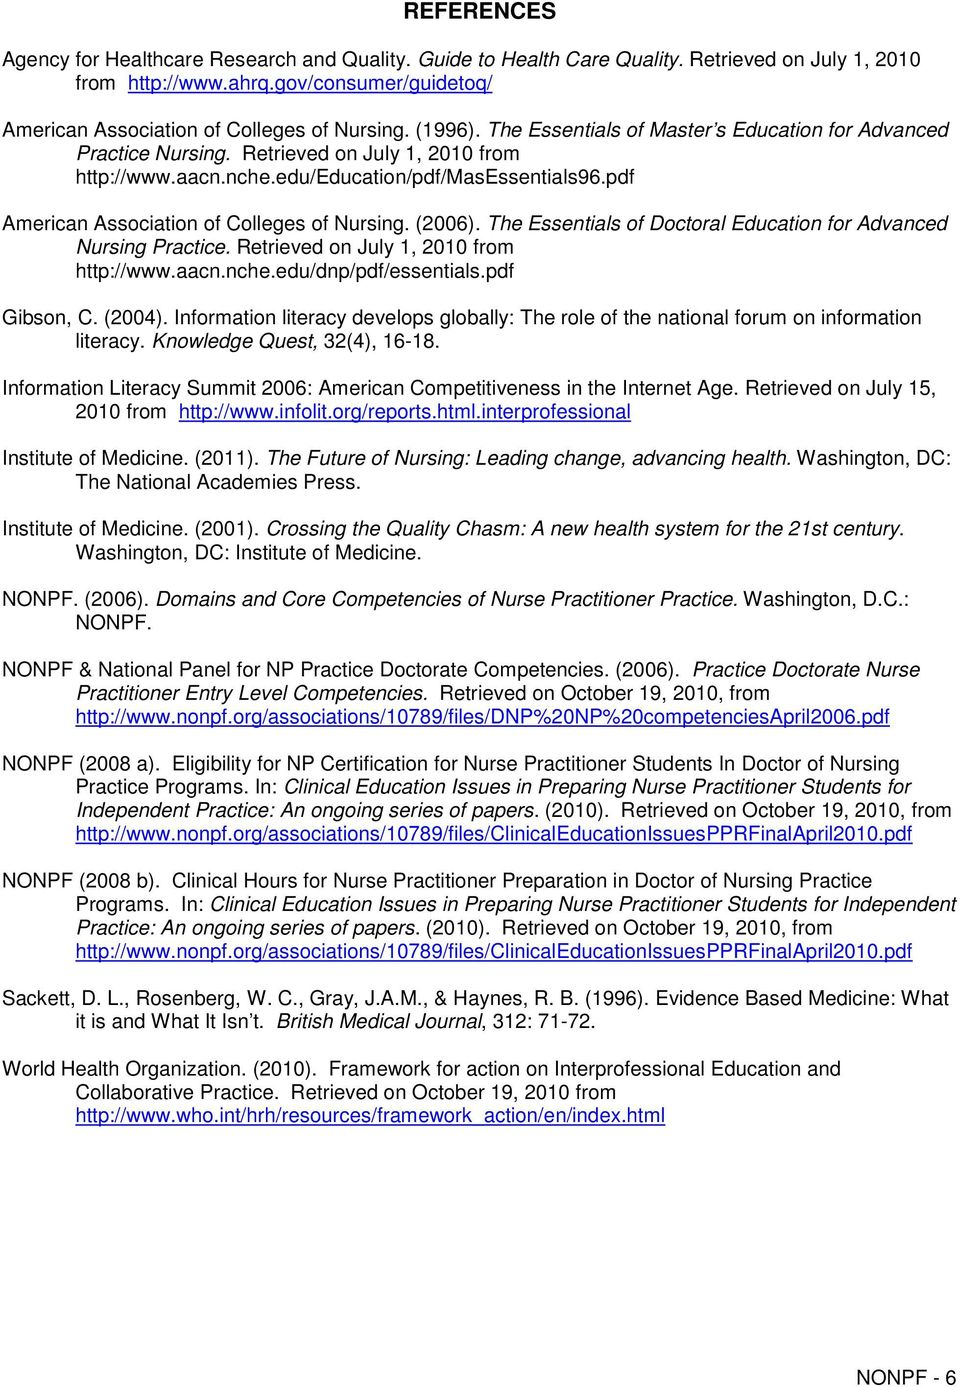 pdf American Association of Colleges of Nursing. (2006). The Essentials of Doctoral Education for Advanced Nursing Practice. Retrieved on July 1, 2010 from http://www.aacn.nche.edu/dnp/pdf/essentials.